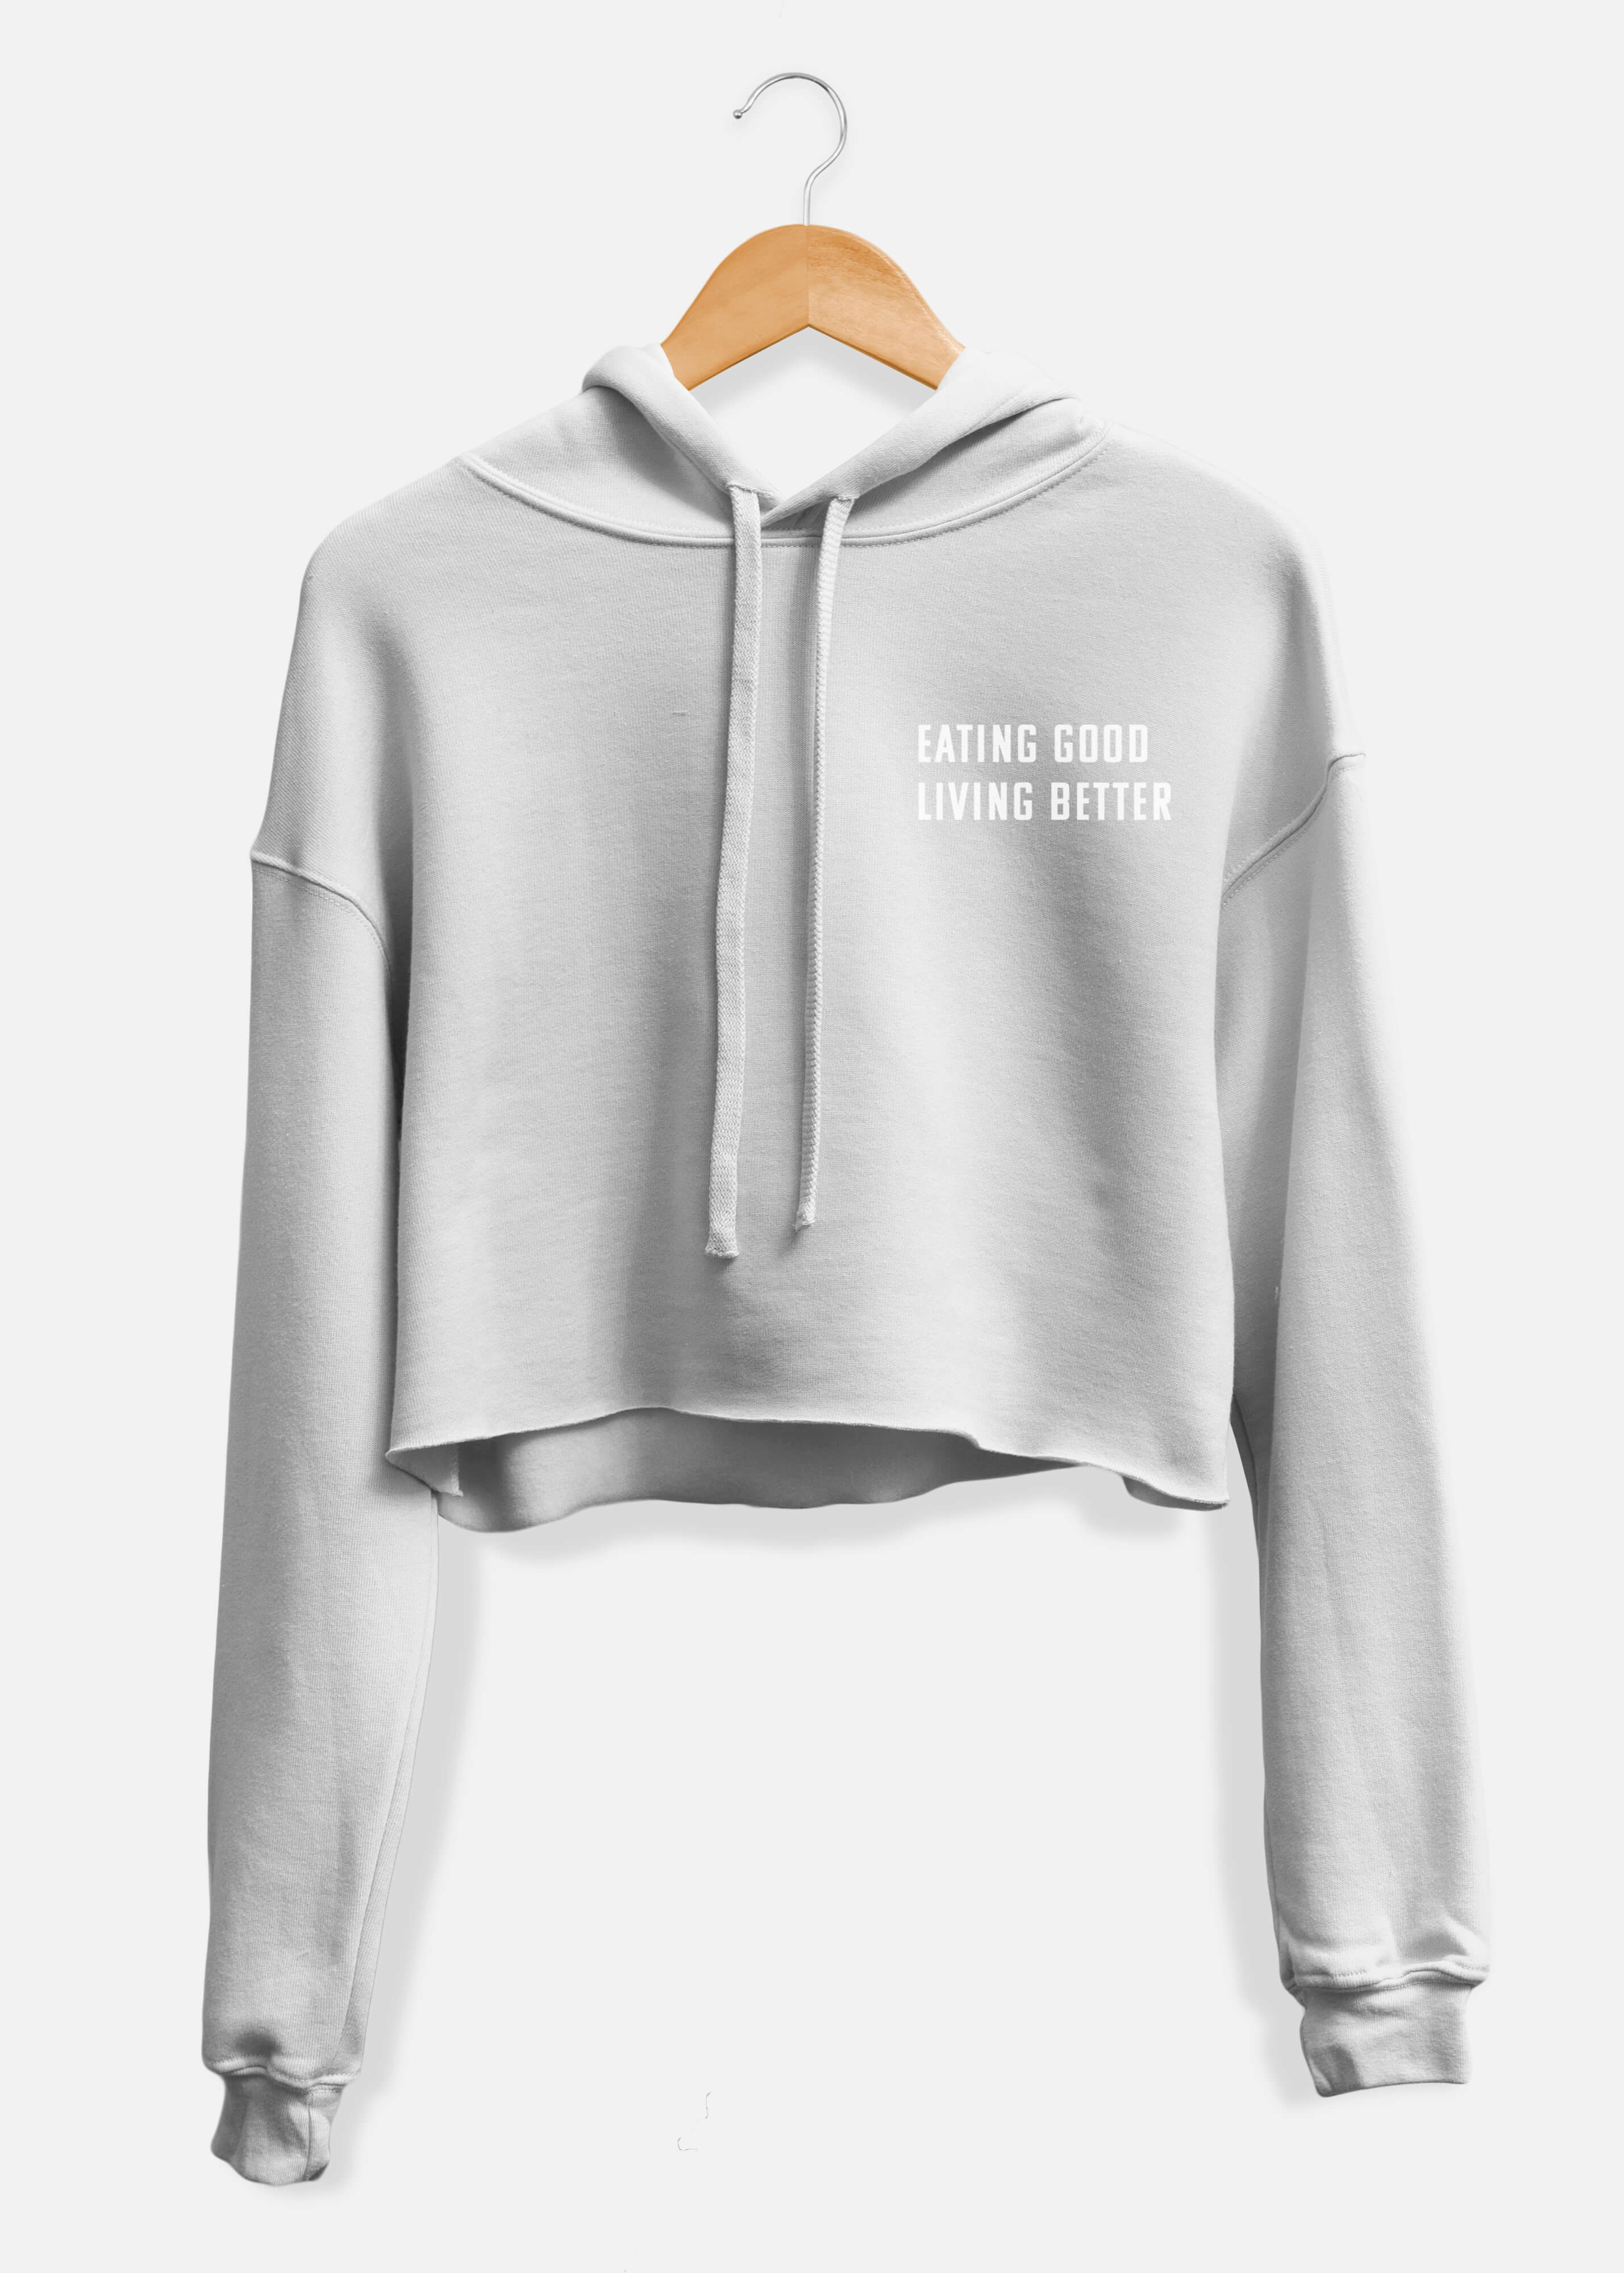 Eating Good Living Better Cropped Hoodie